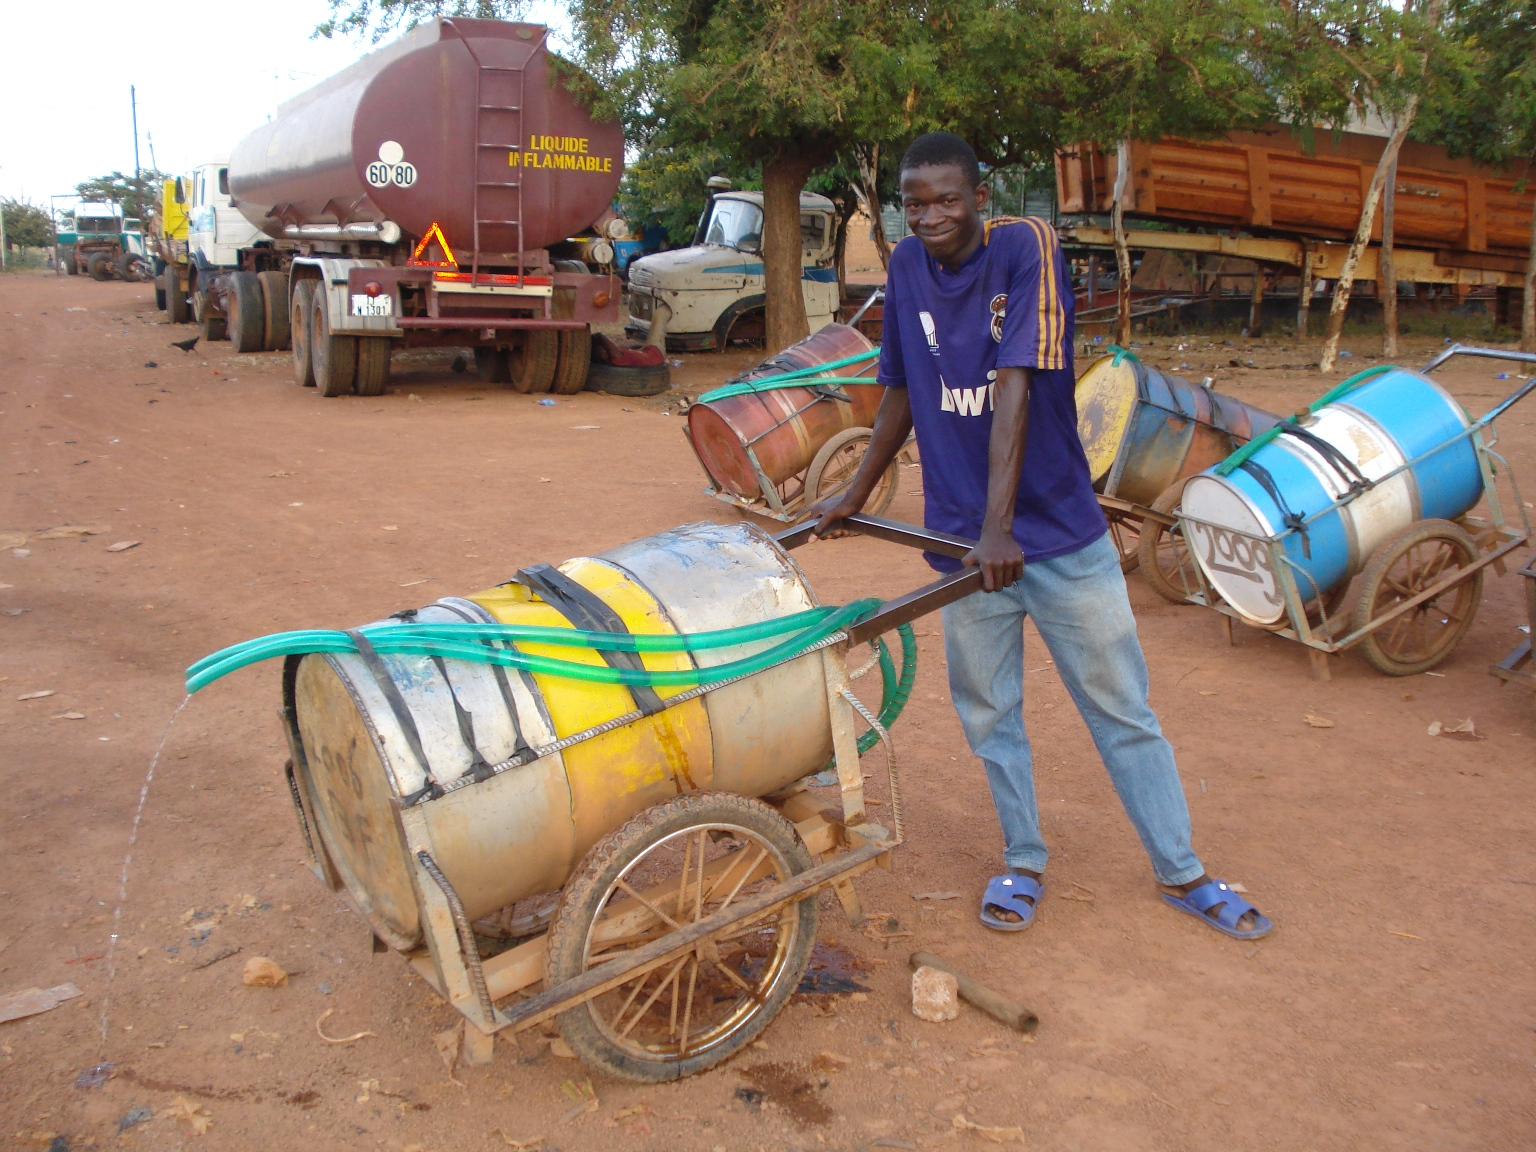 A 'barrique' (220 litre barrel on wheels) for conveying water, in Burkina Faso capital, Ouagadougou (2009)